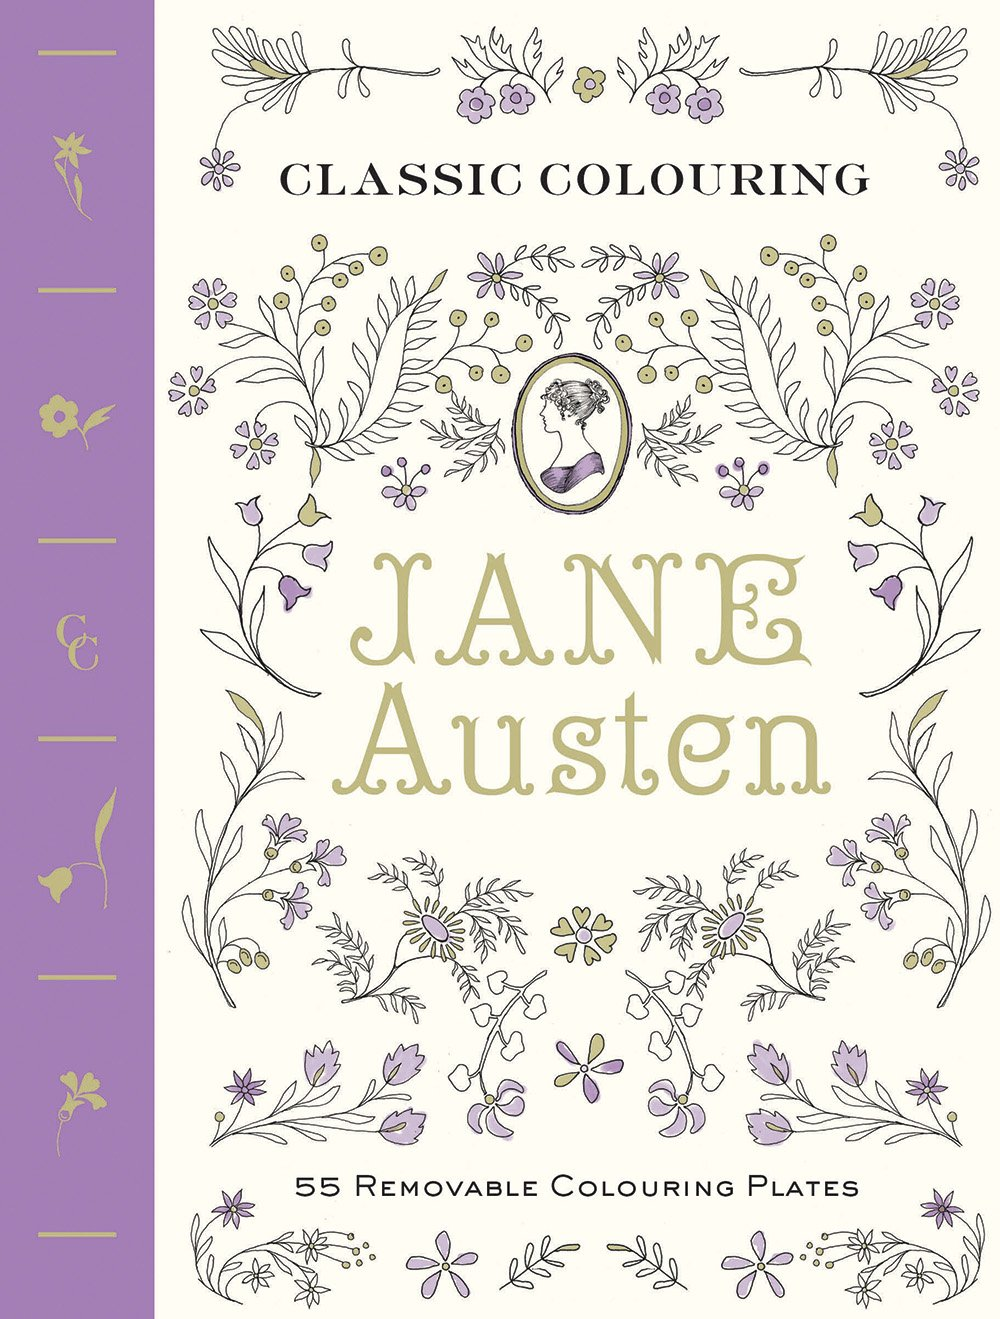 Classic Colouring: Jane Austen (Adult Colouring Book) [UK EDITION]: 55 Removable Colouring Plates pdf